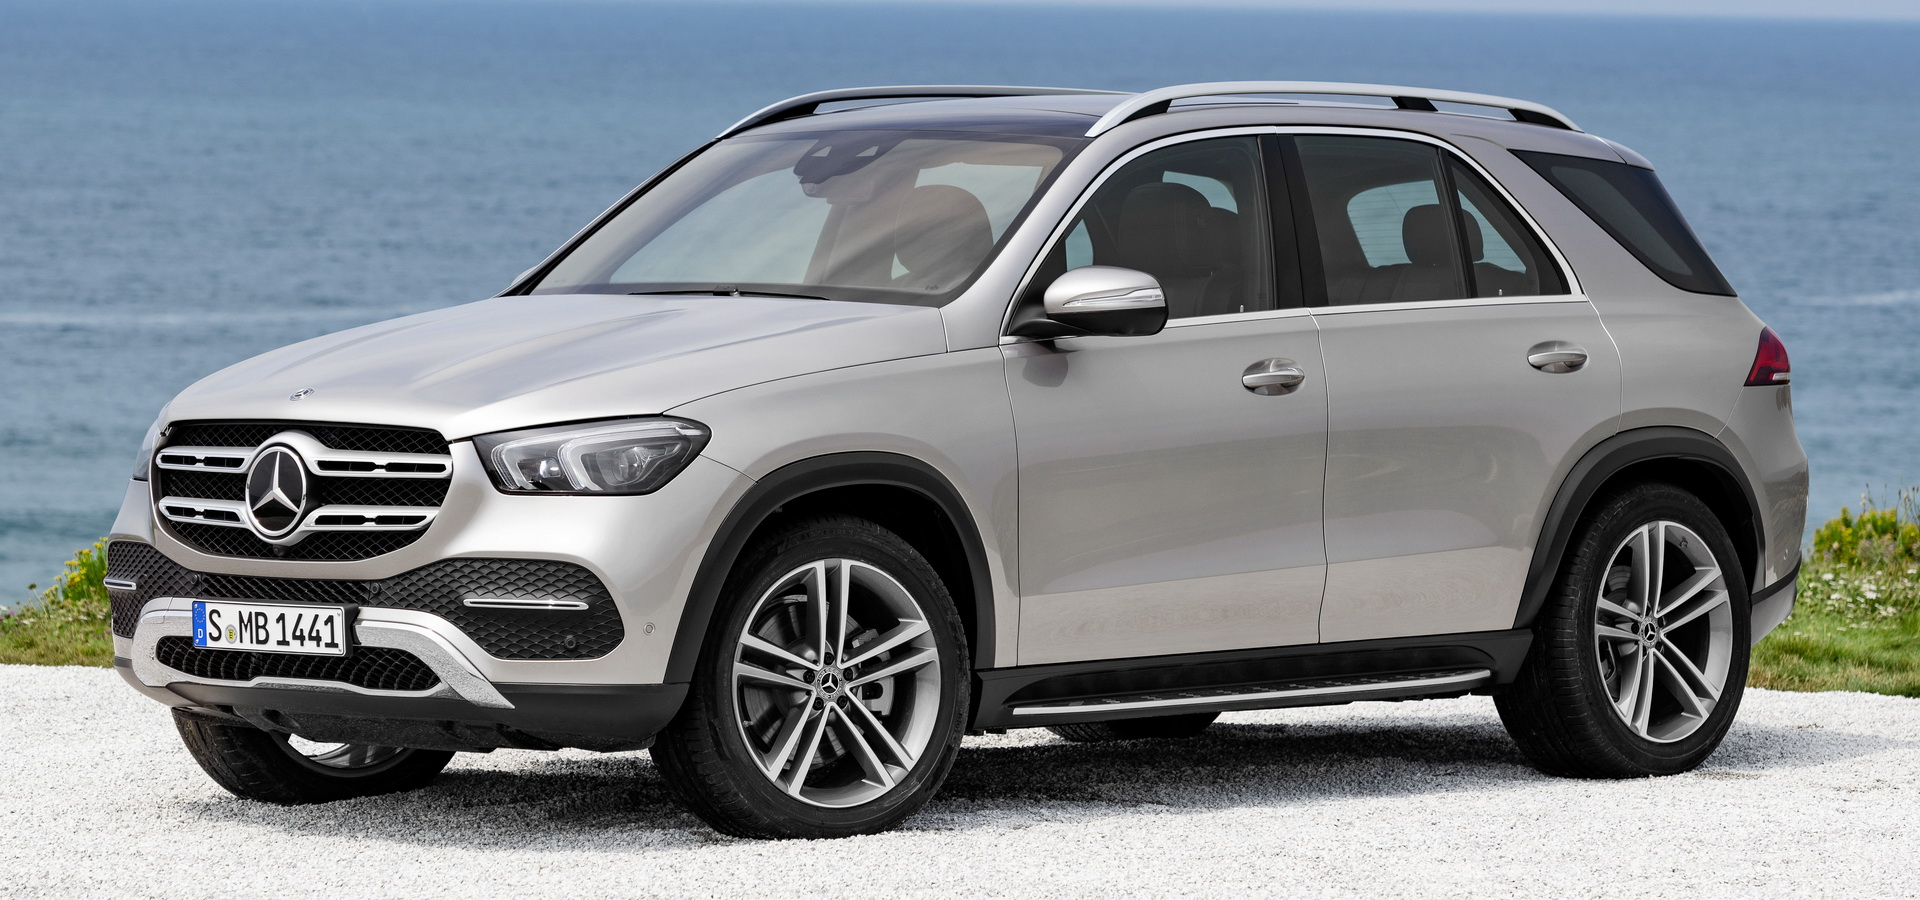 90 The 2019 Mercedes Ml Class Prices for 2019 Mercedes Ml Class